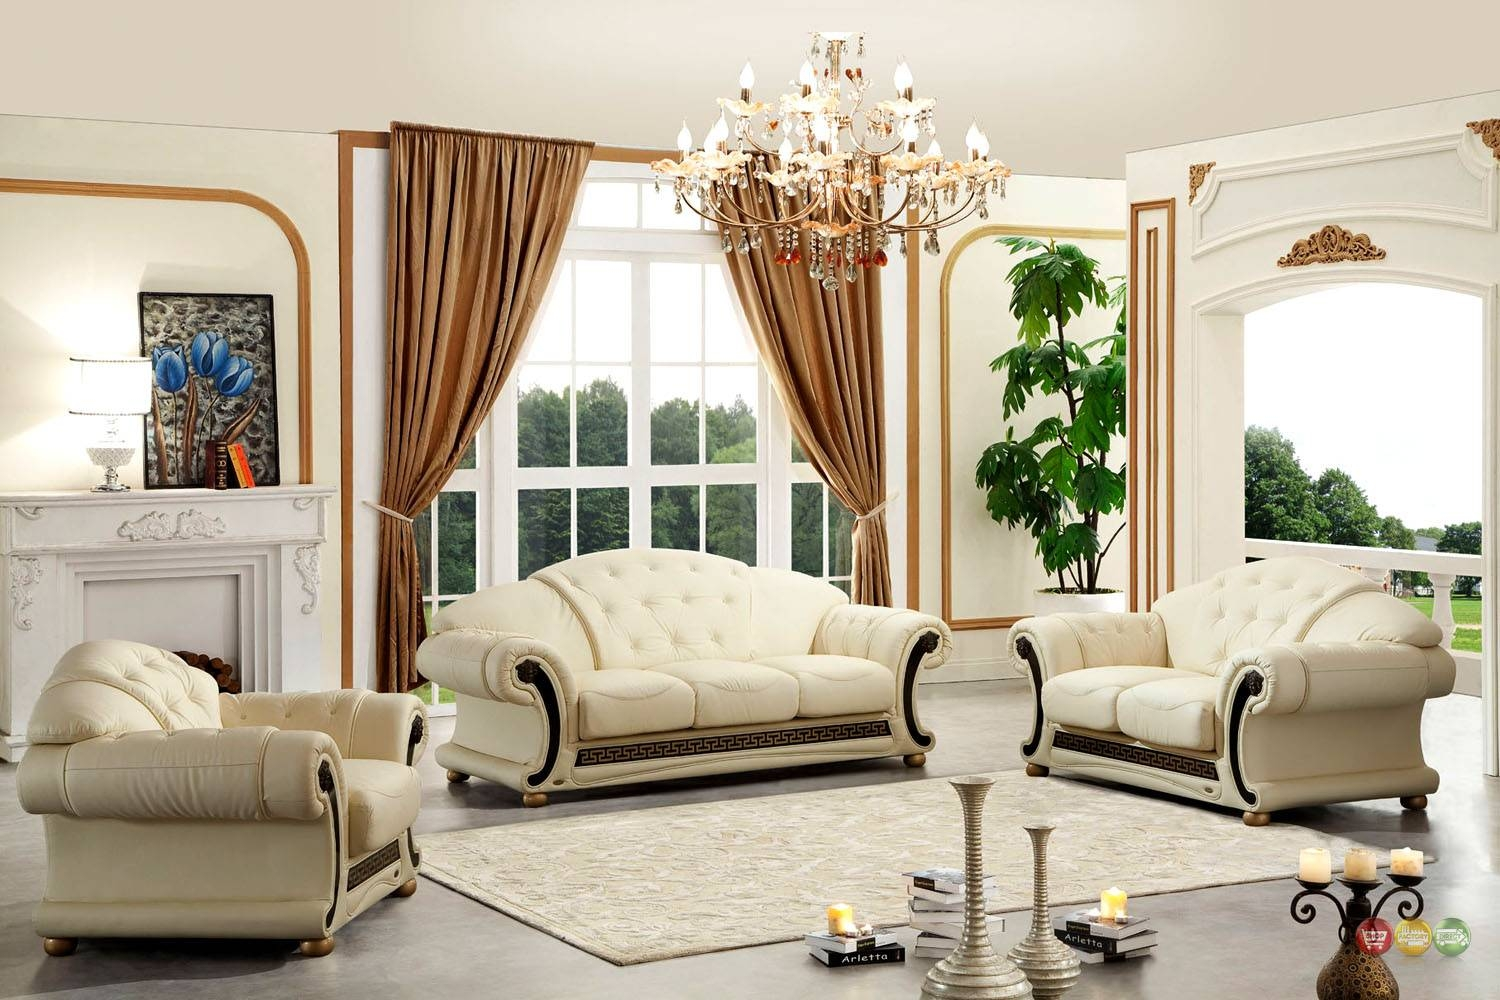 Versace Cleopatra Cream Italian Leather Living Room Sofa Loveseat Pertaining To Cleopatra Sofas (View 15 of 15)